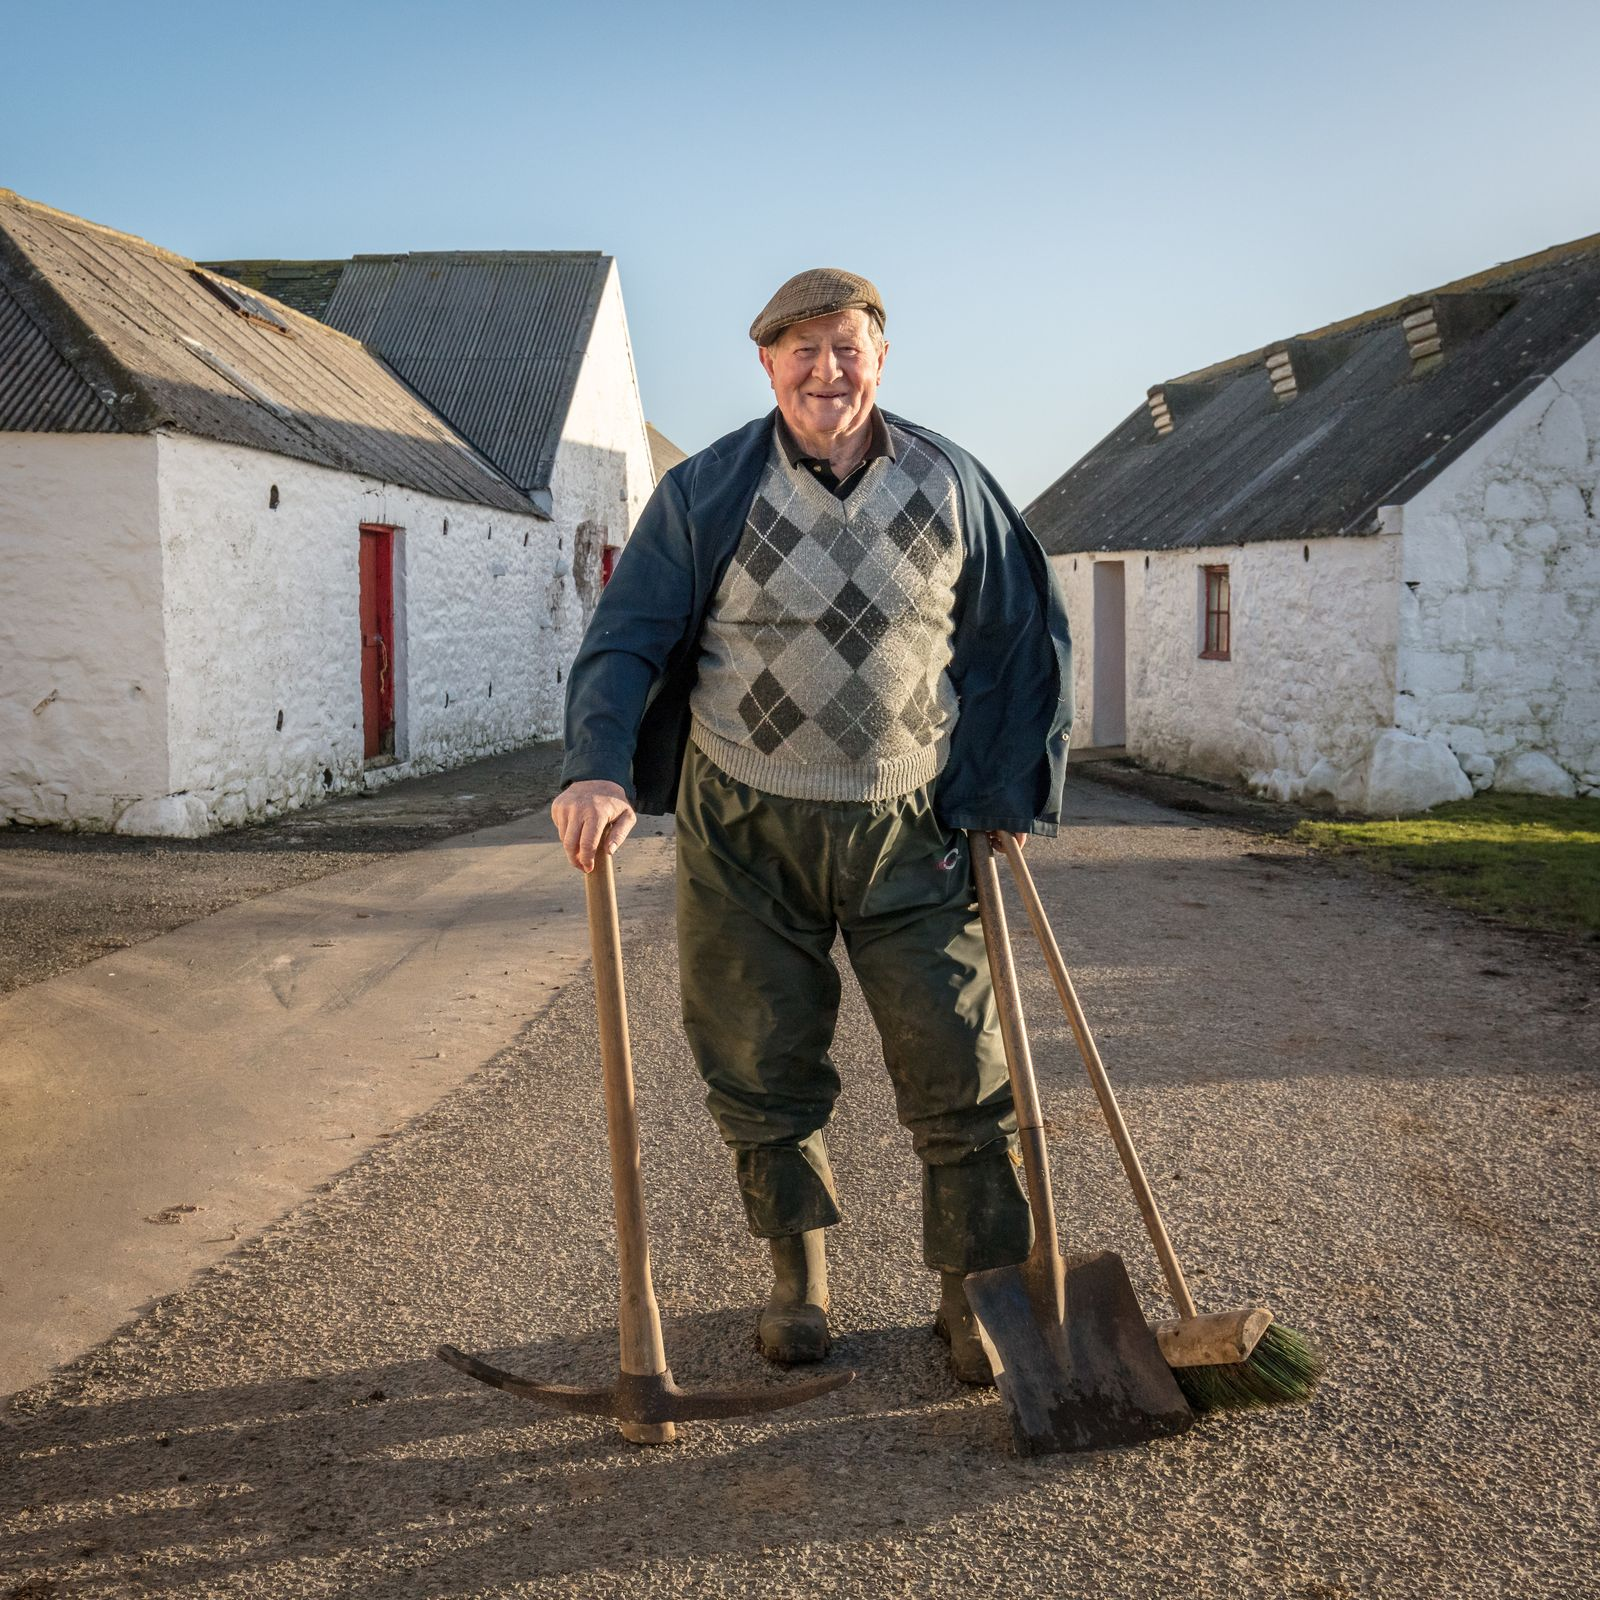 Hughes of Knockencule Farm on the way to feed his cows. There are a handful of derelict crofts on his land that once housed seven people that used to work with him. Today he manages the farm mostly a